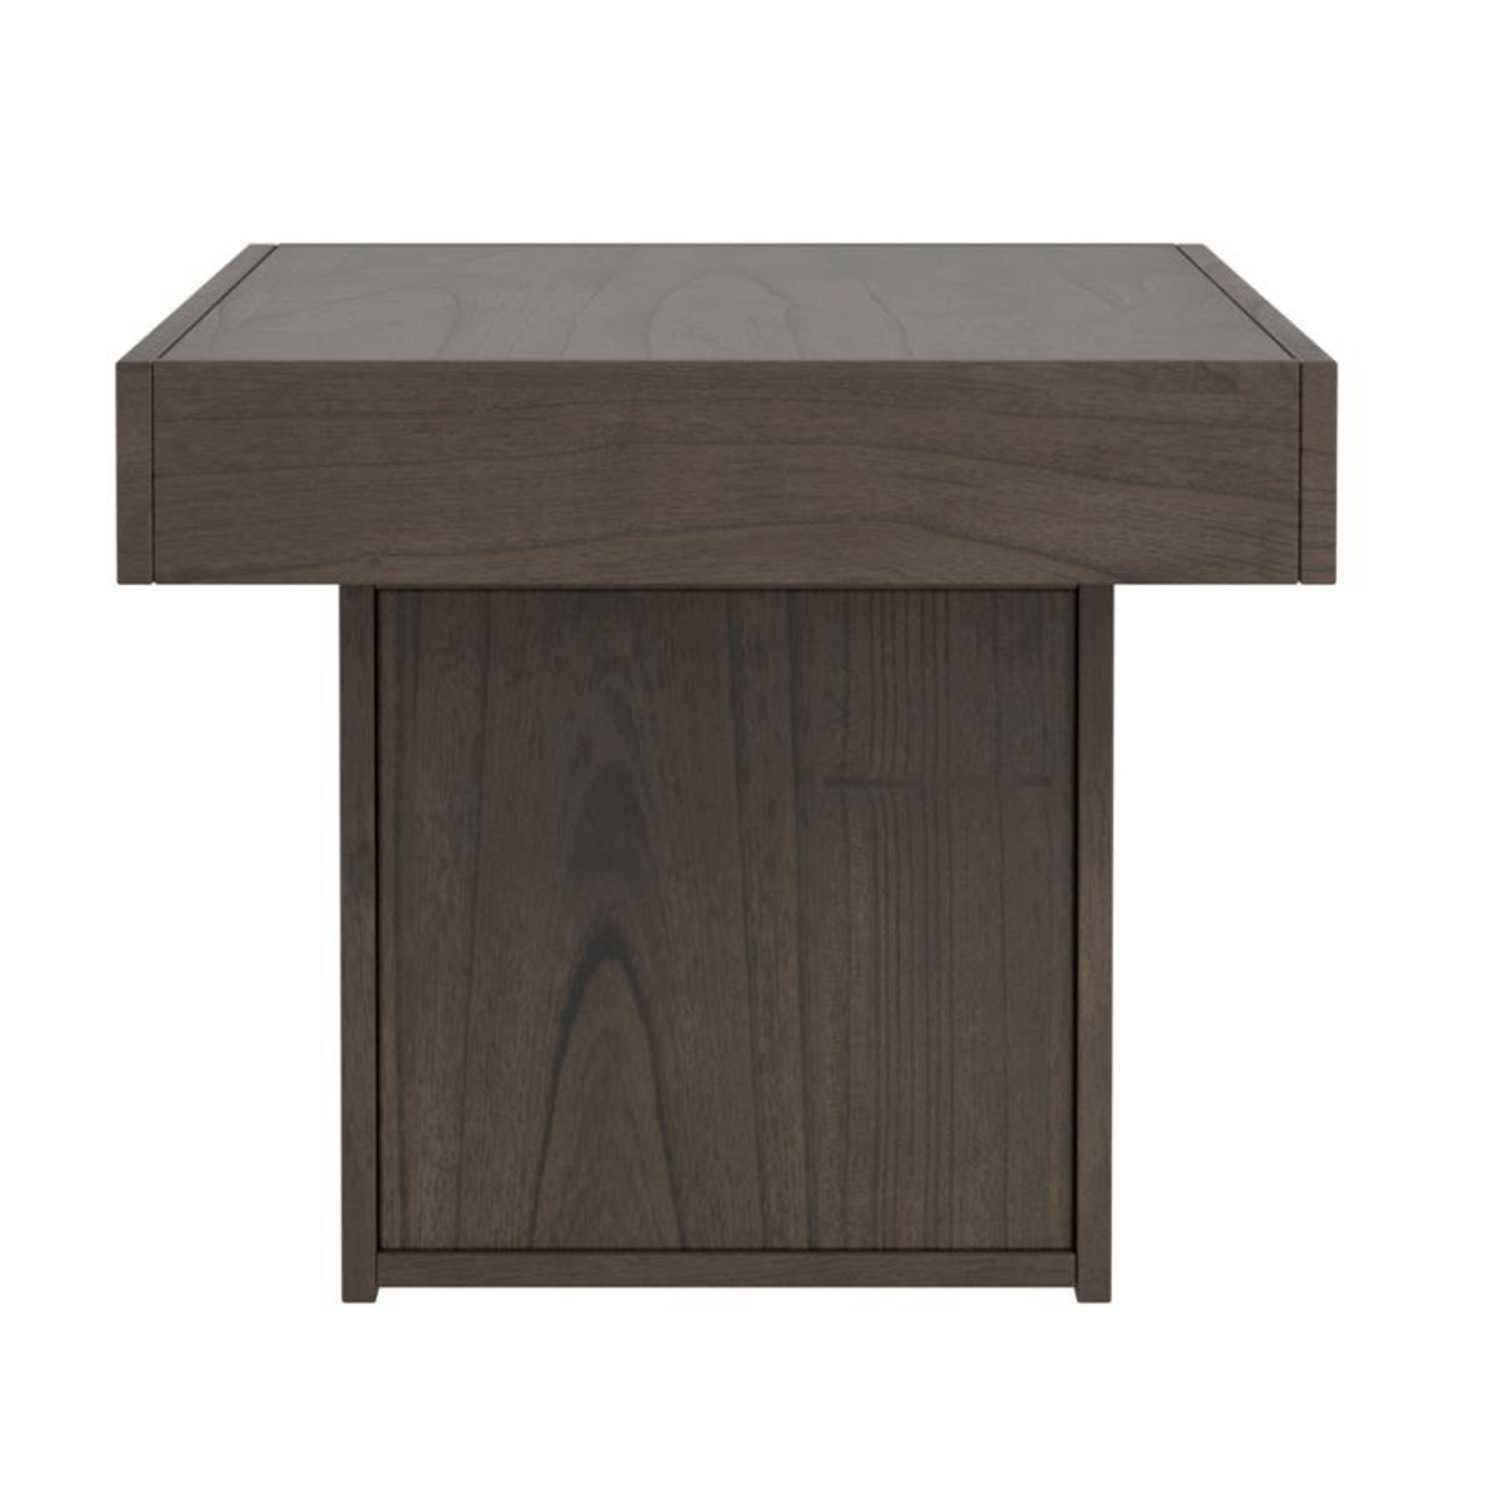 Coffee Table In Wheat Brown Finish - image-2